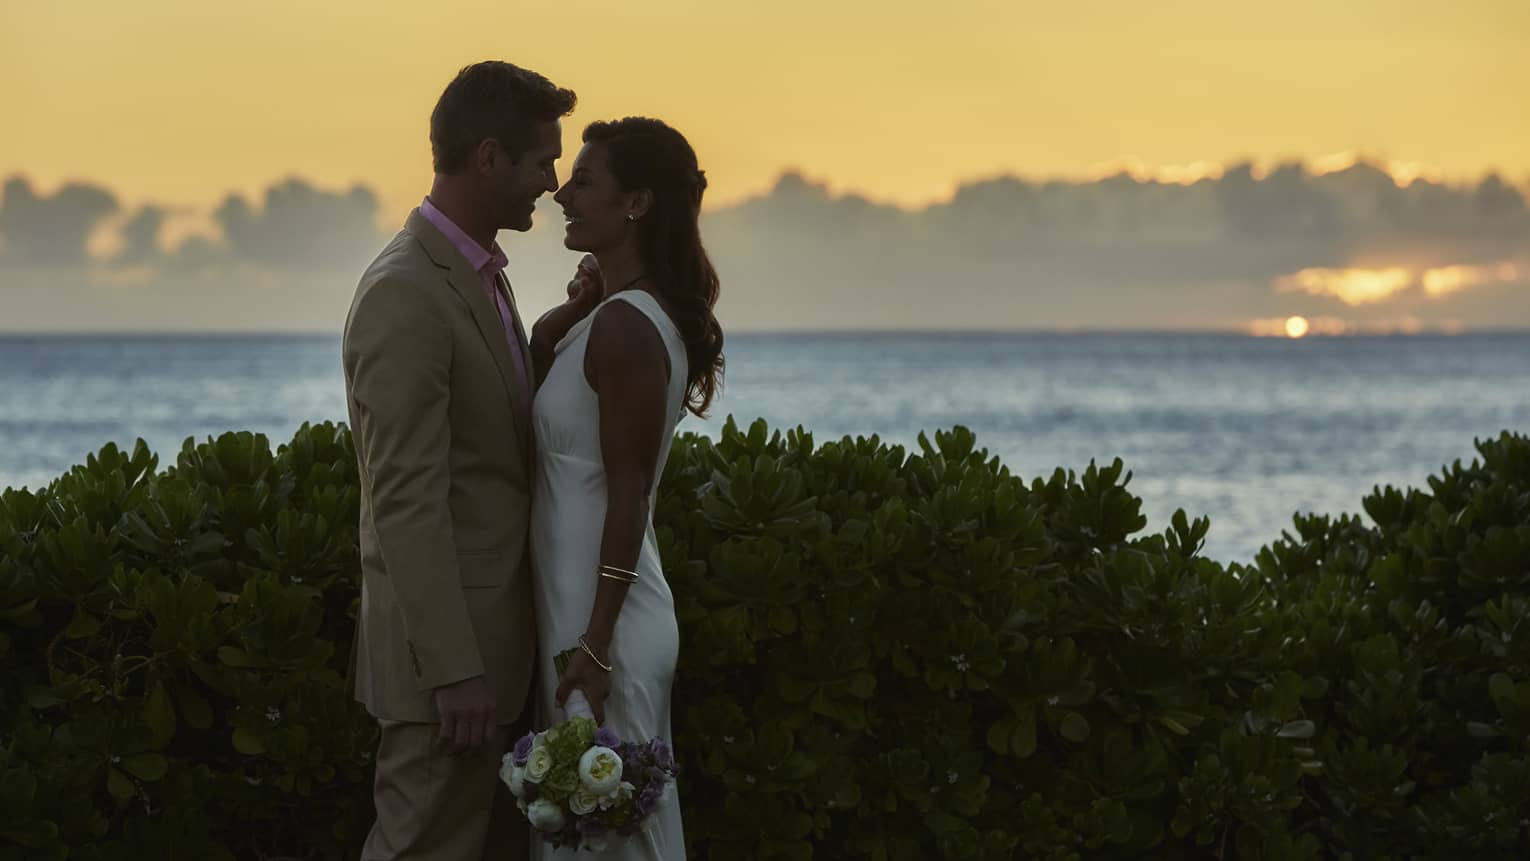 Silhouettes of bride and groom leaning in for kiss against sunset